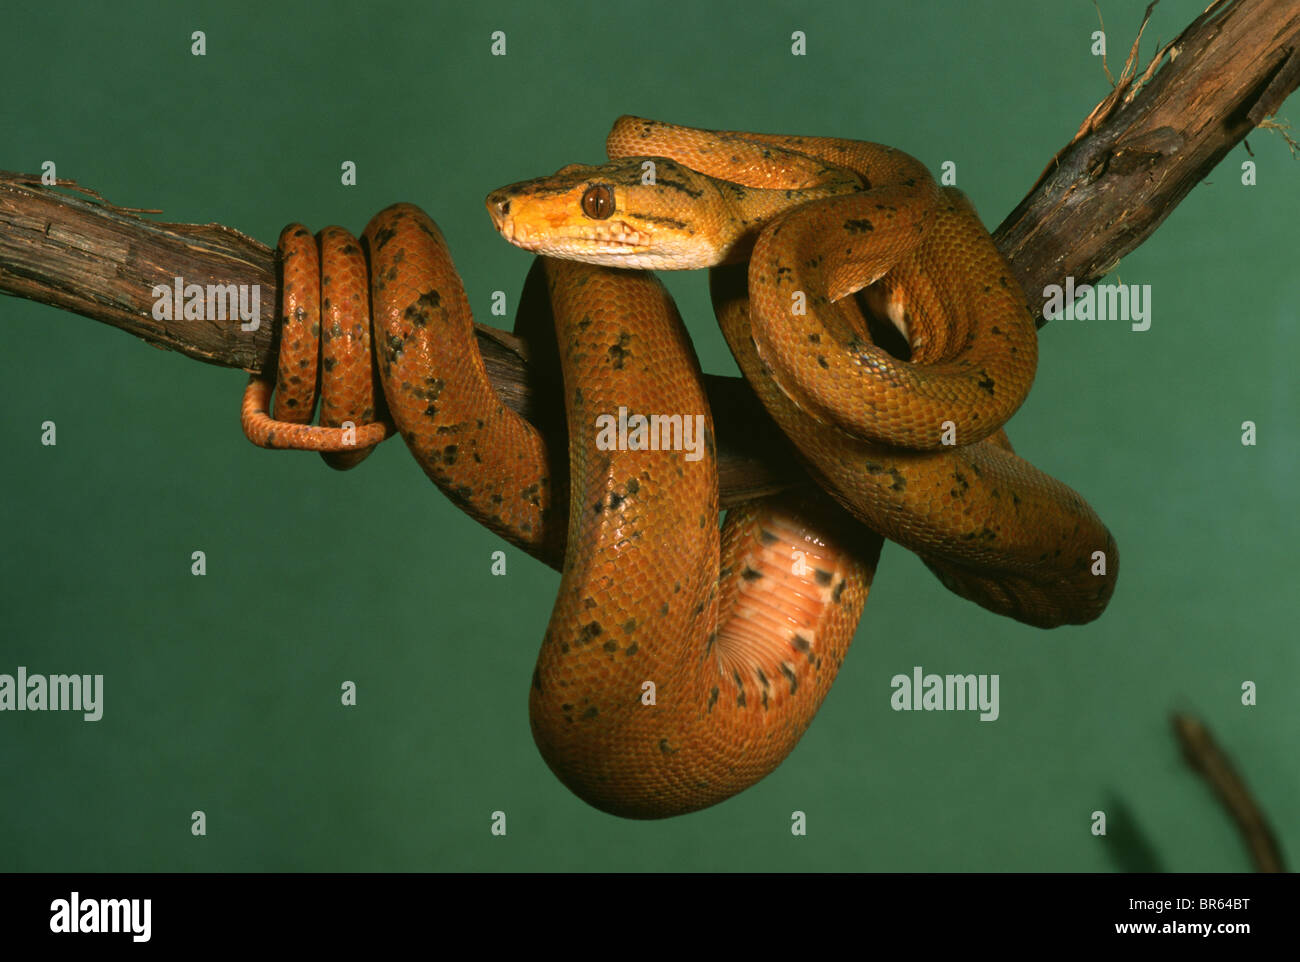 Amazon Tree Boa Corallus enydris hortulanus South America Stock ...